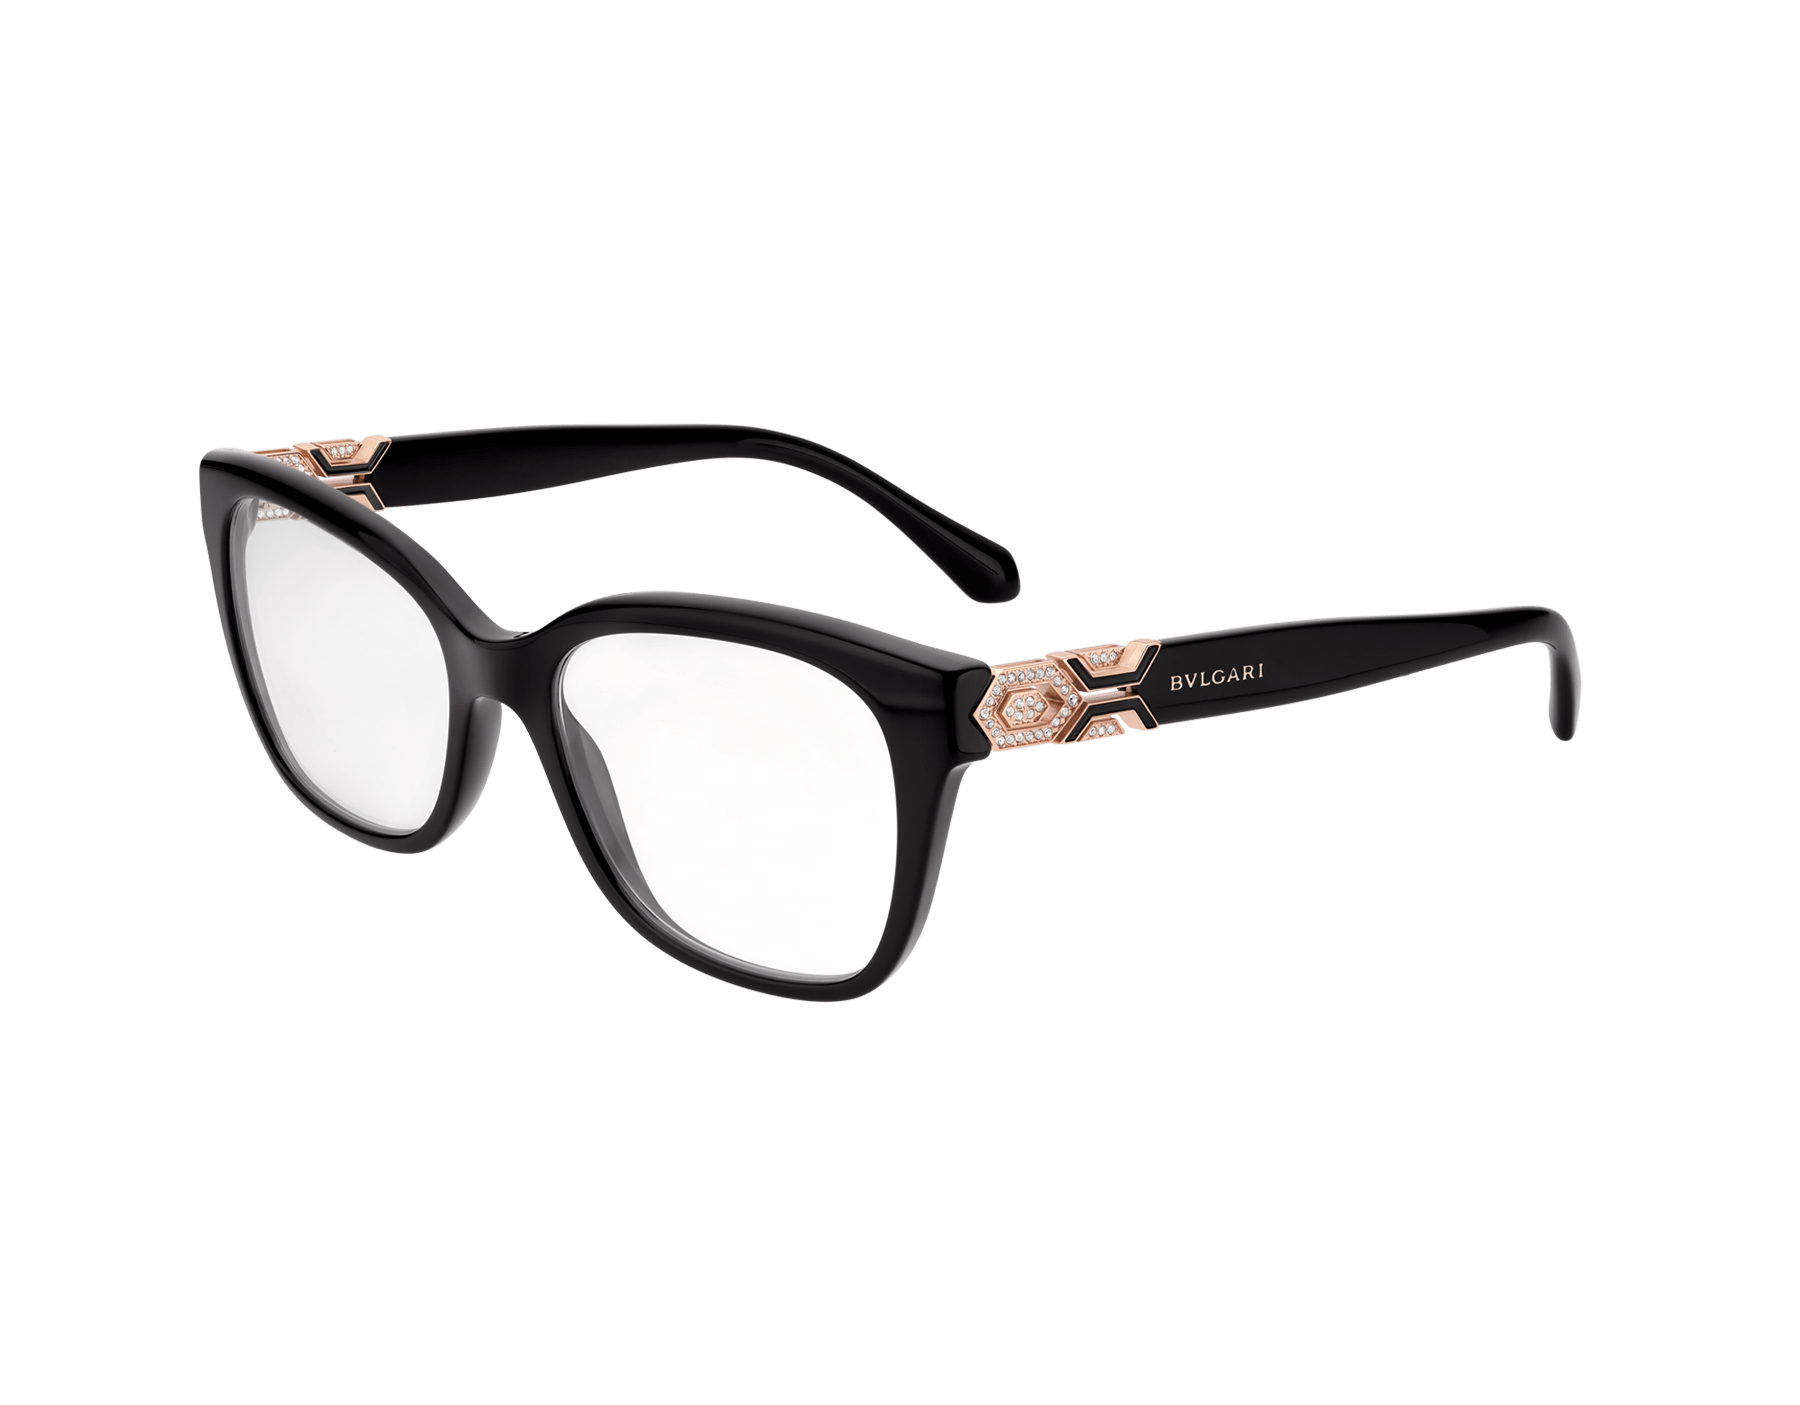 Serpenti rectangular acetate optical glasses with metal décor. 903766 image 1